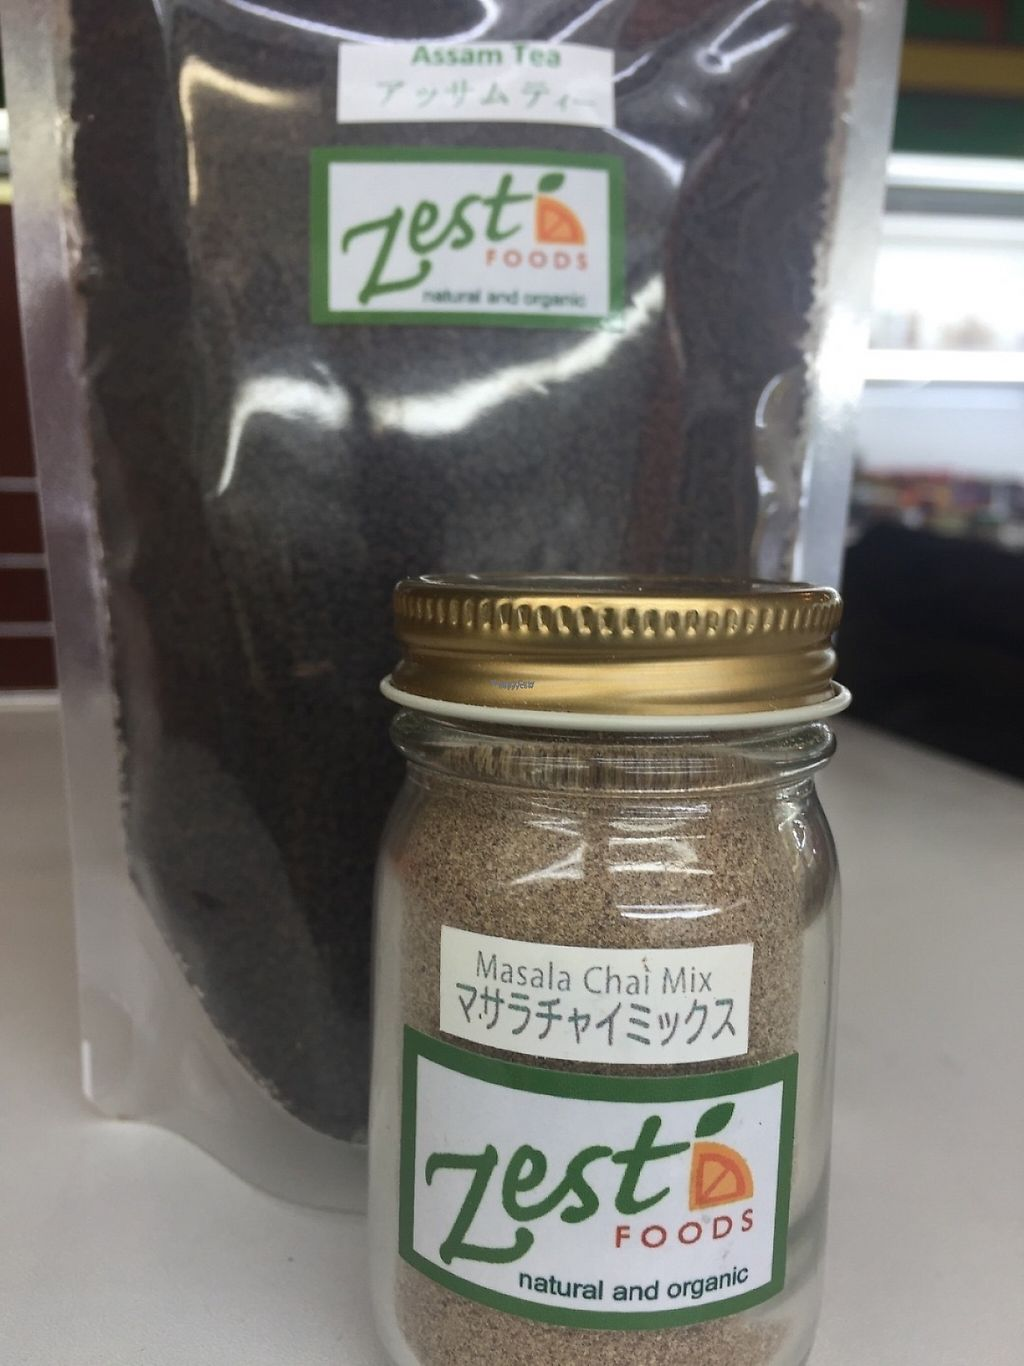 """Photo of Zest Foods  by <a href=""""/members/profile/Vegeiko"""">Vegeiko</a> <br/>Amazing chai set for 1200 yen! <br/> January 30, 2017  - <a href='/contact/abuse/image/86193/219575'>Report</a>"""